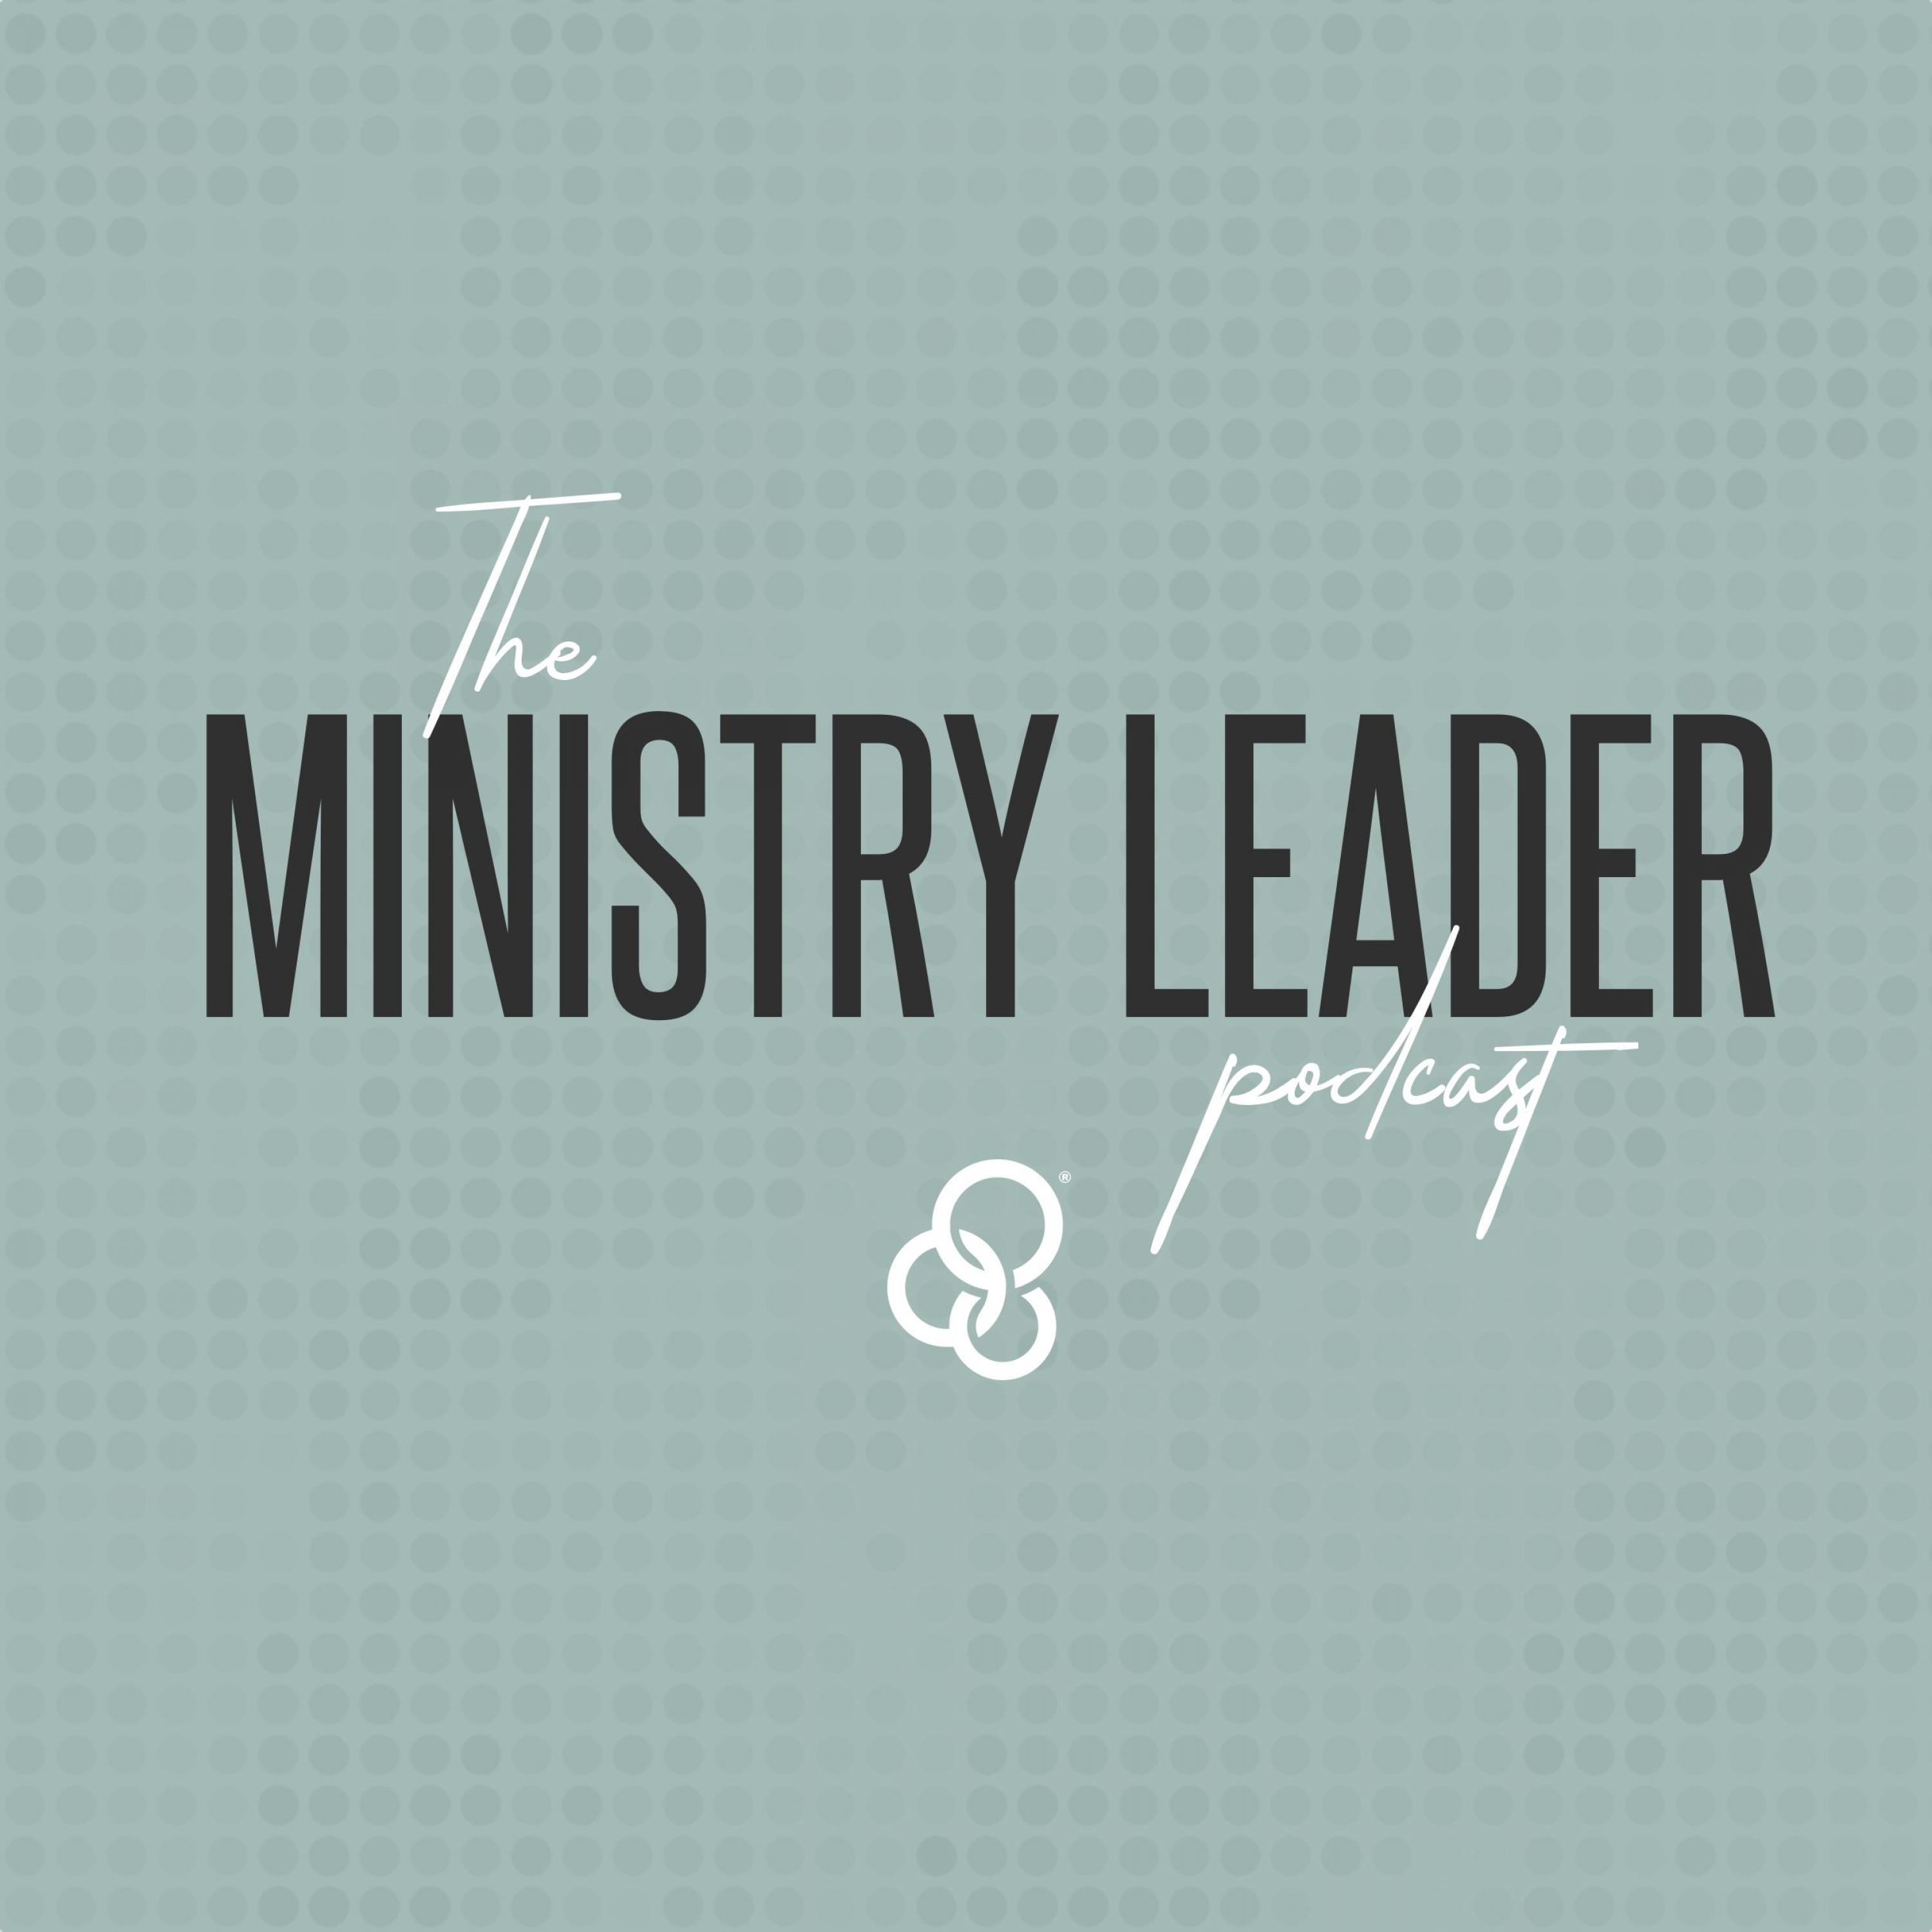 The Ministry Leader